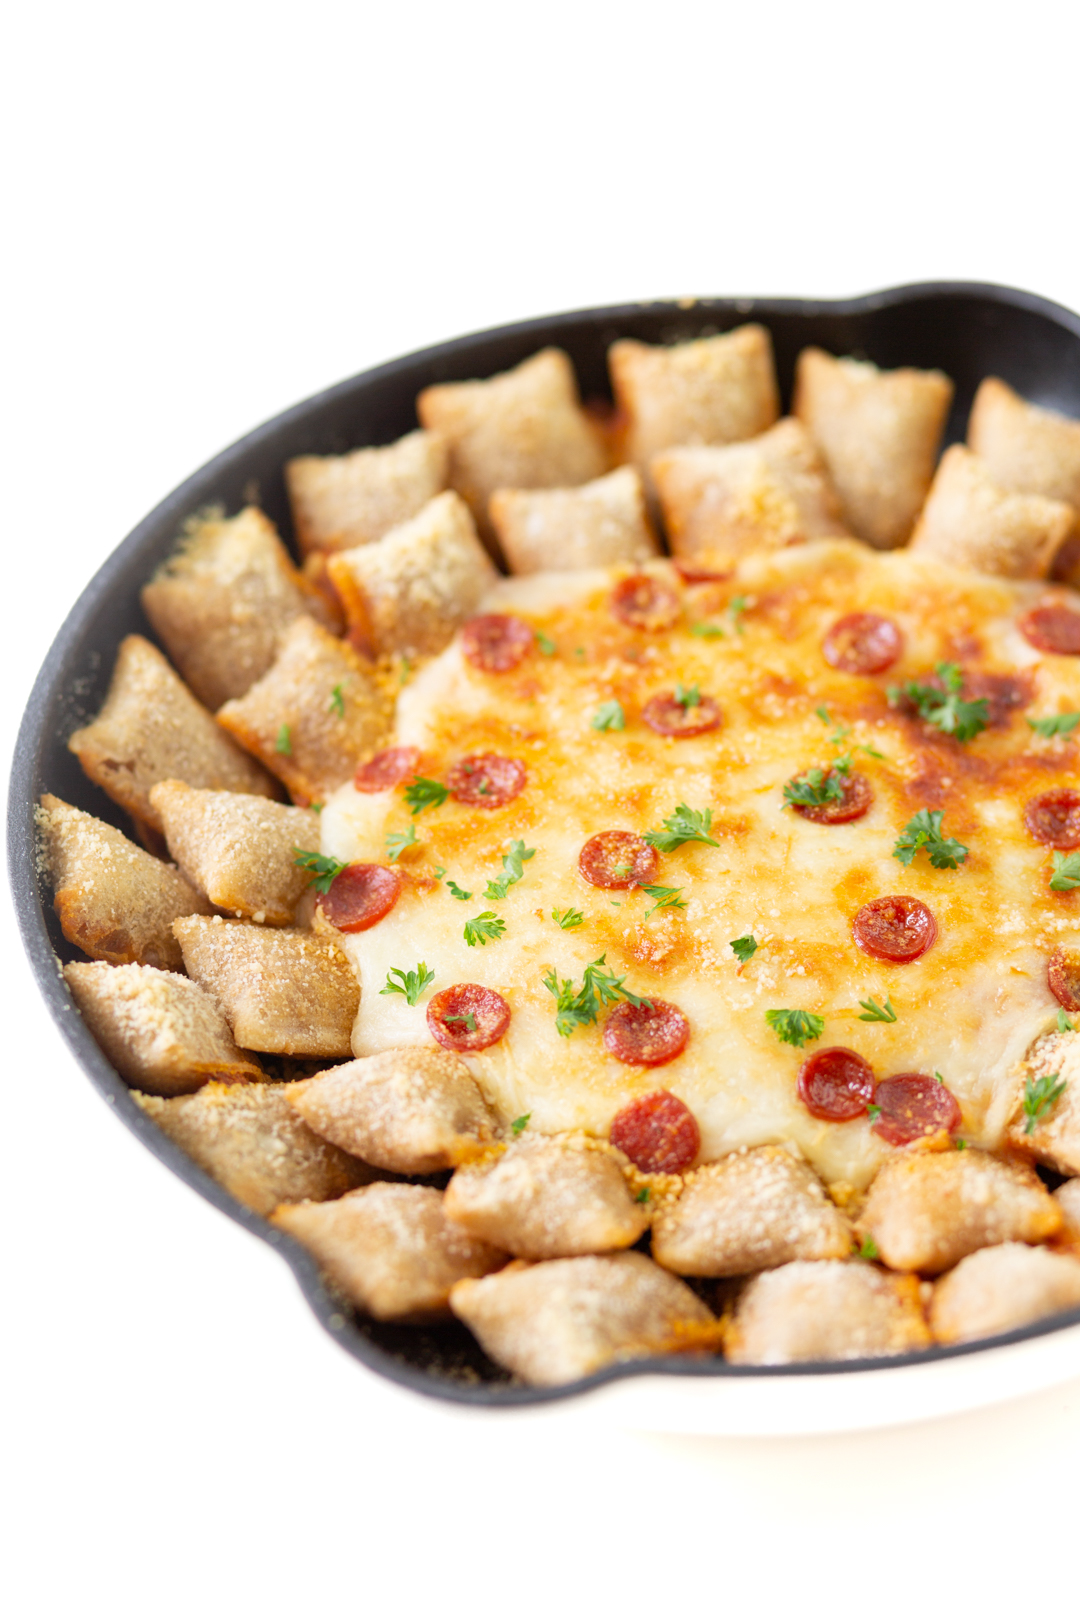 hearty dip made in a skillet with cheese, mini pepperoni and lined with pepperoni pizza rolls. Topped with snippets of parsley for garnish.